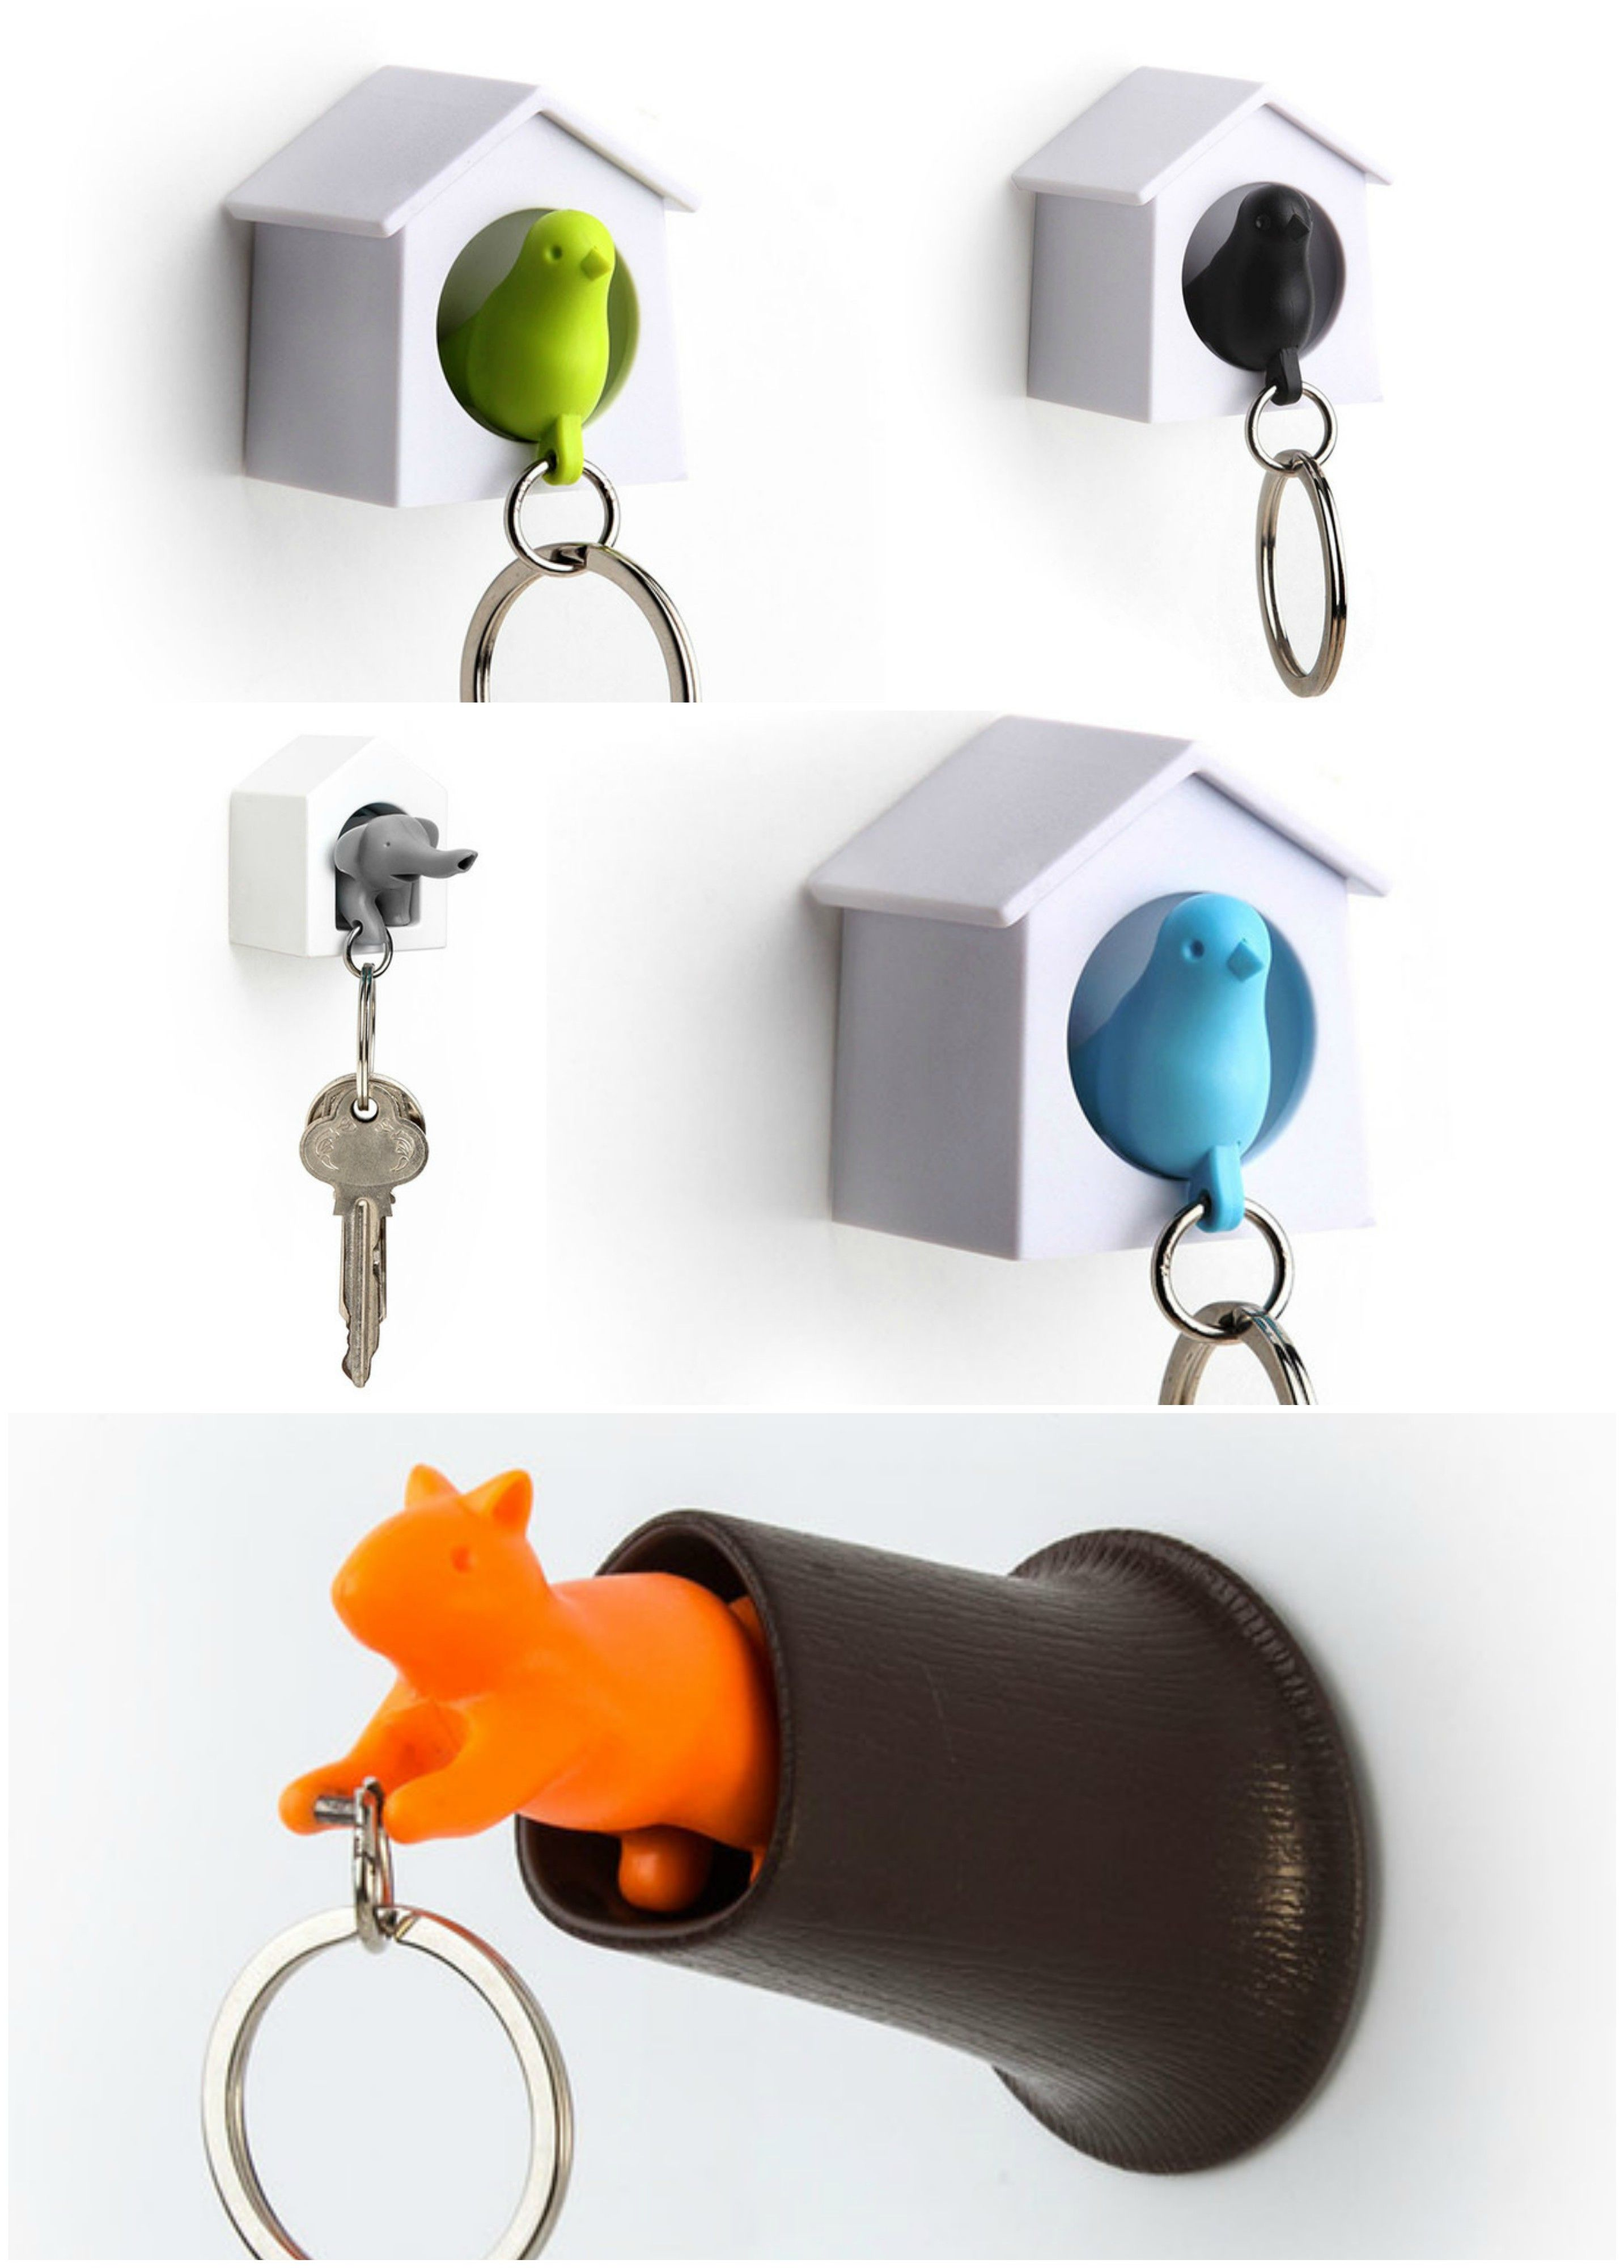 Let them holding your keys. Very cute key hoders. Shop at https://www.theurbantreehouse.com/search?q=key+holder